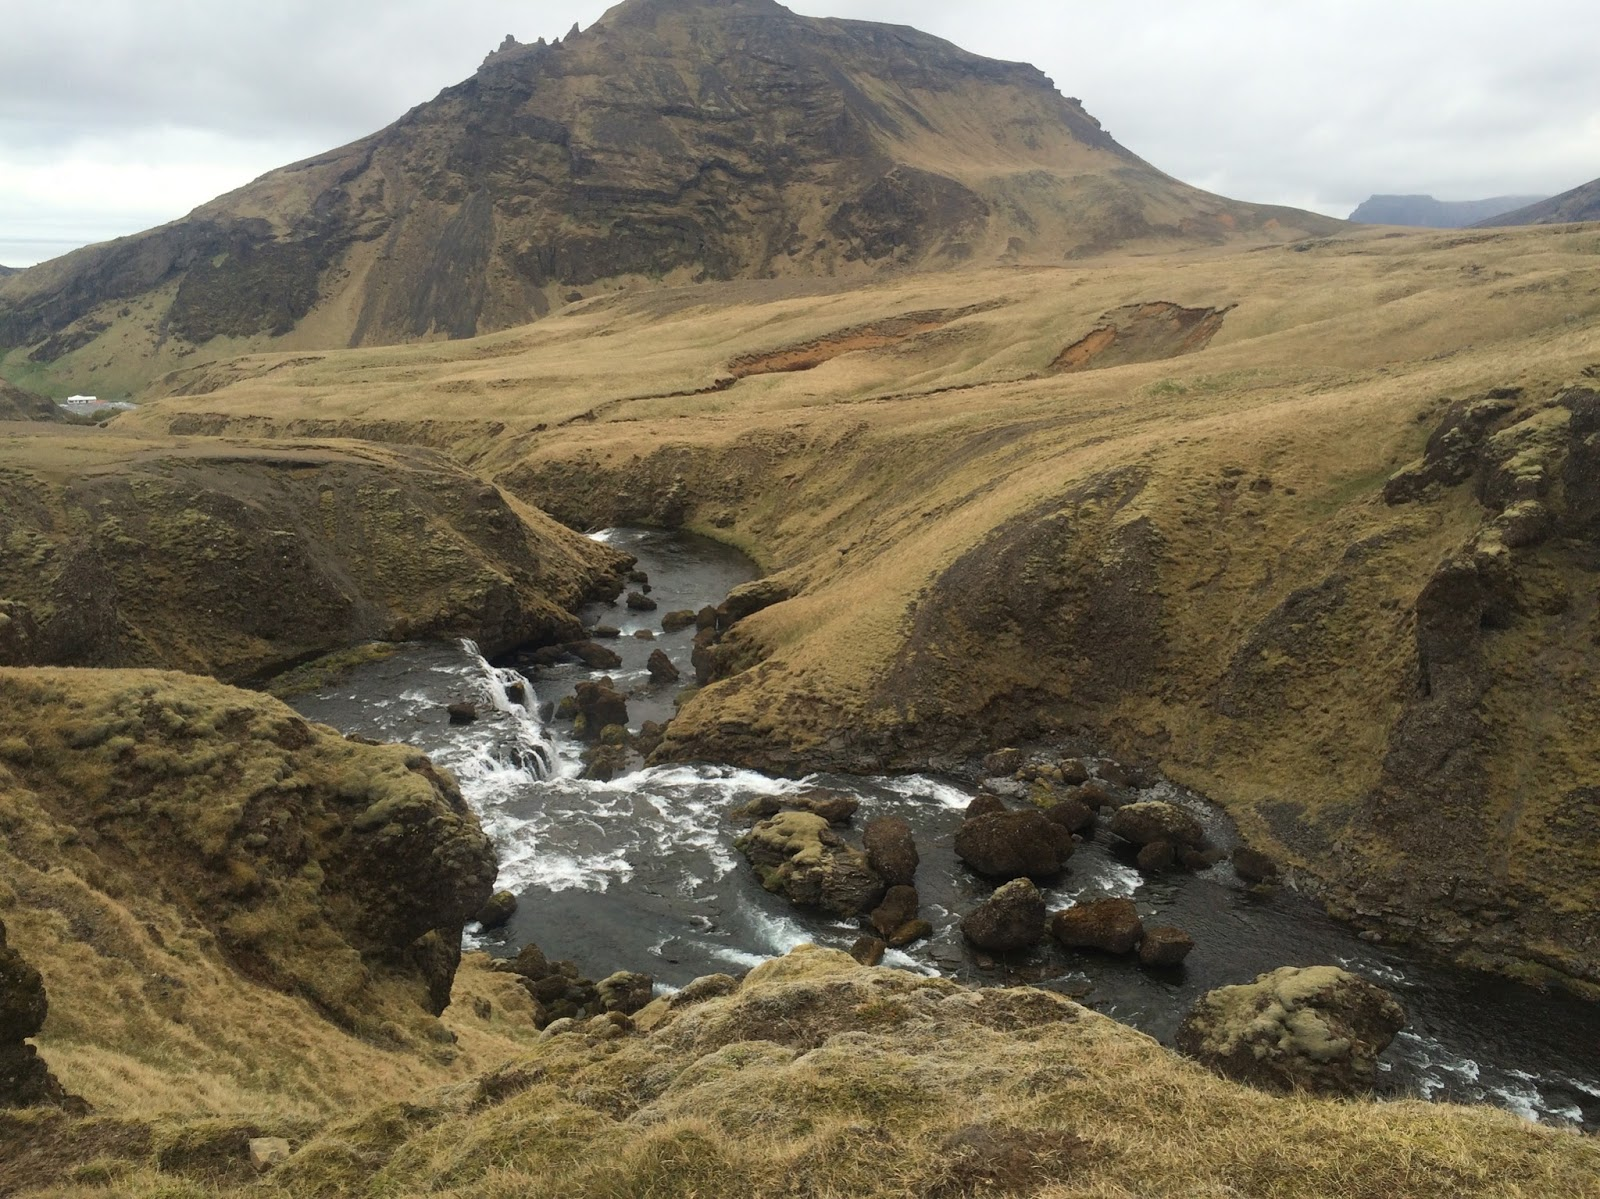 Hiking behind the Skogafoss waterfall in Iceland